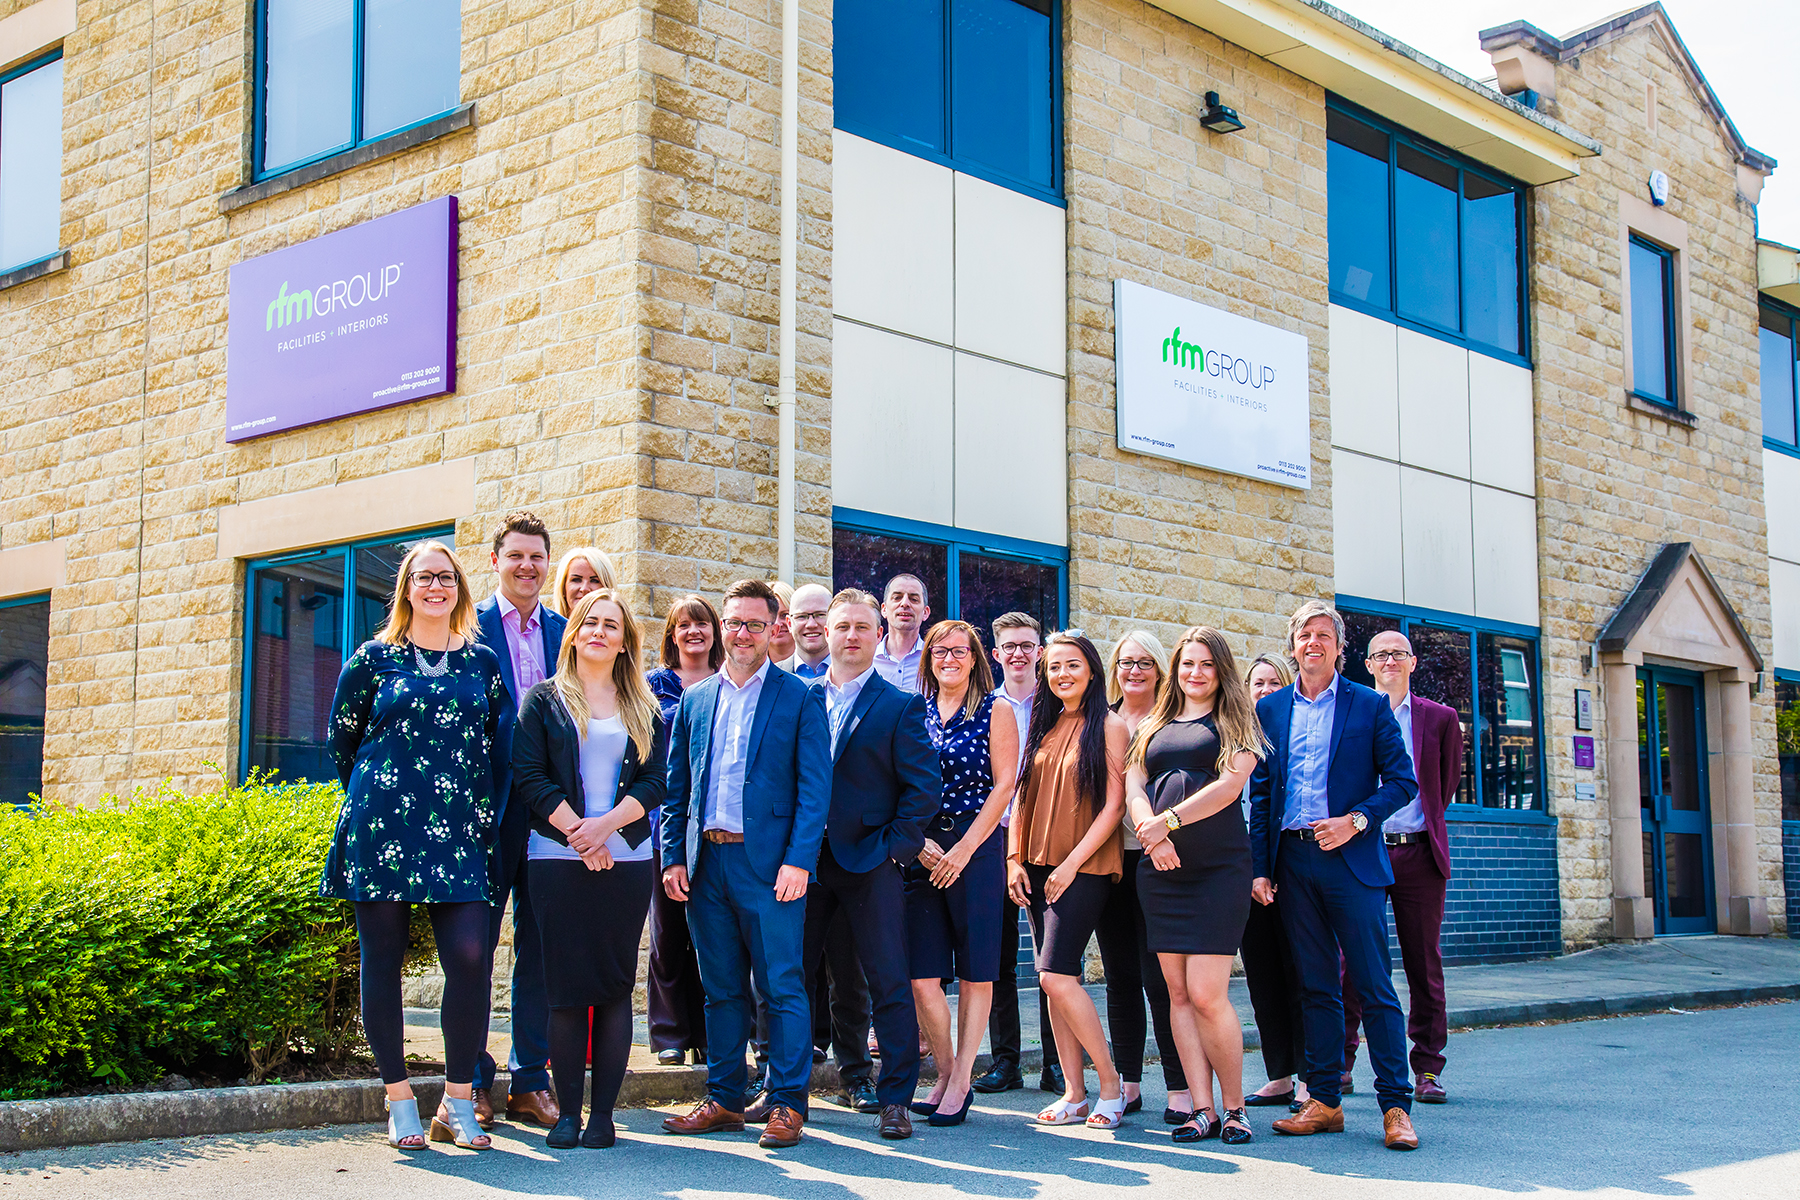 commercial photography, head shots, corporate photography, rfm interiors, interior design, group shots, leeds, west yorkshire